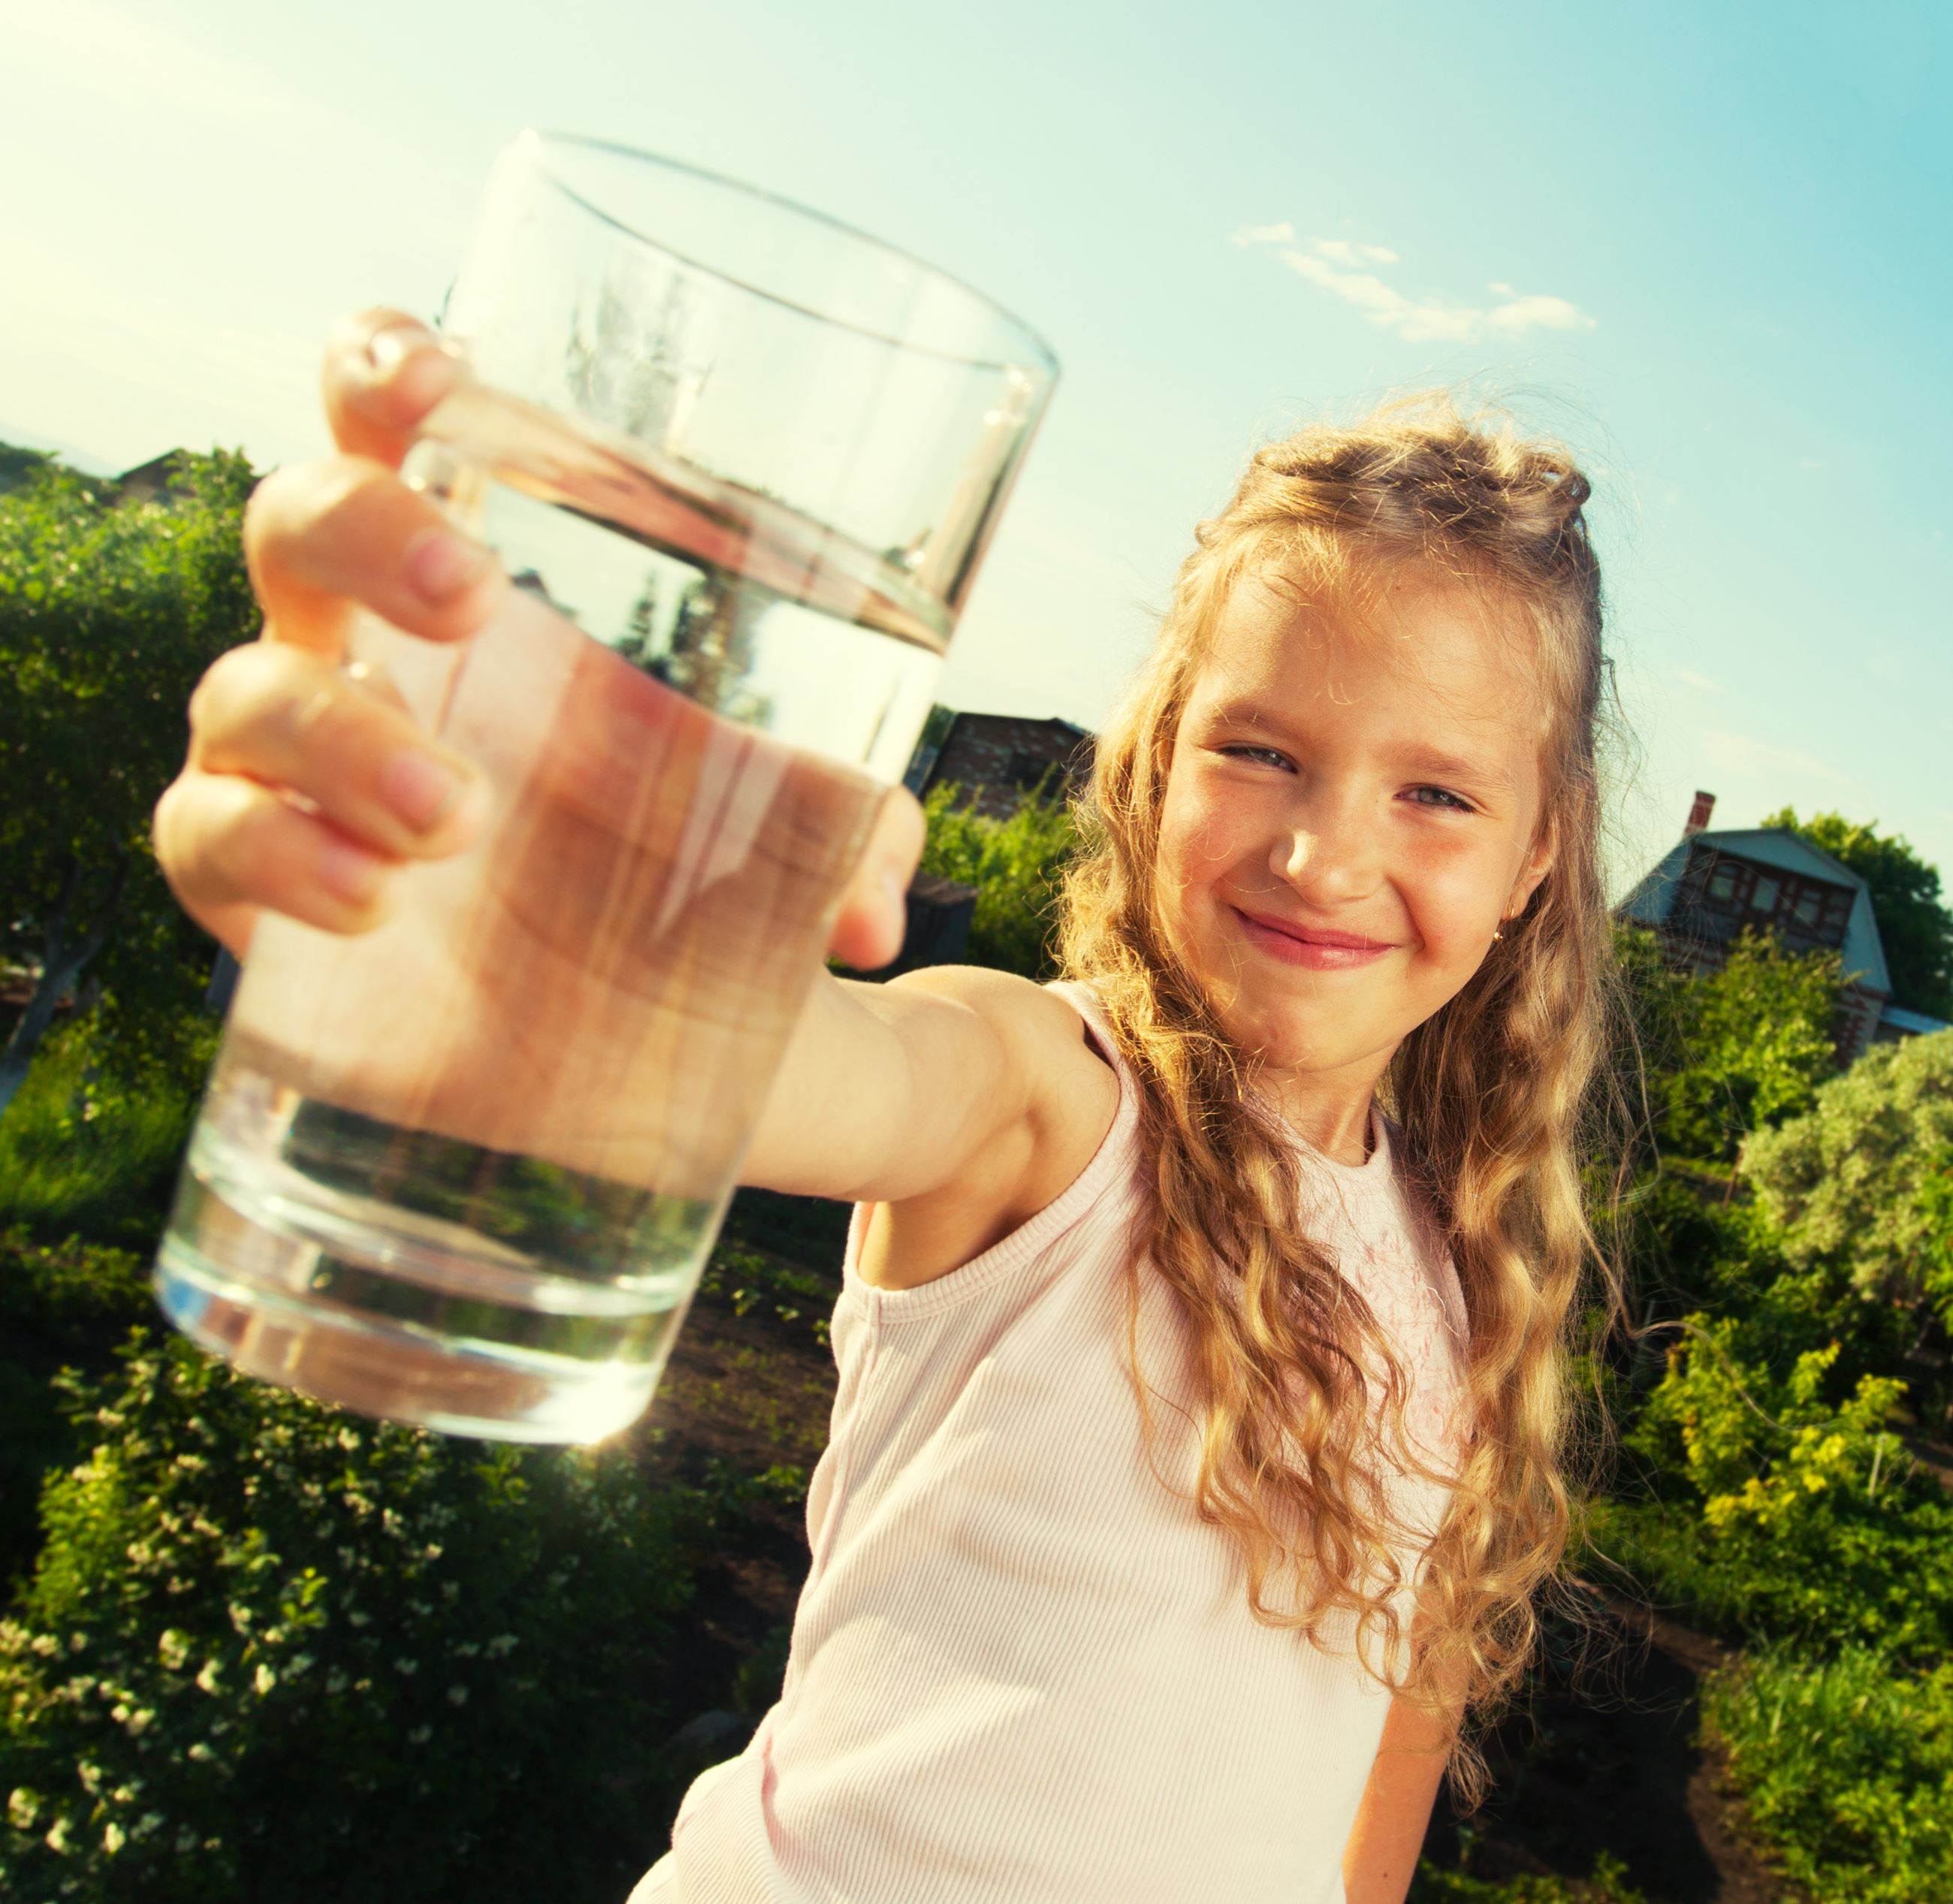 Girl Drinking Water - AdobeStock_80189289 - Copy